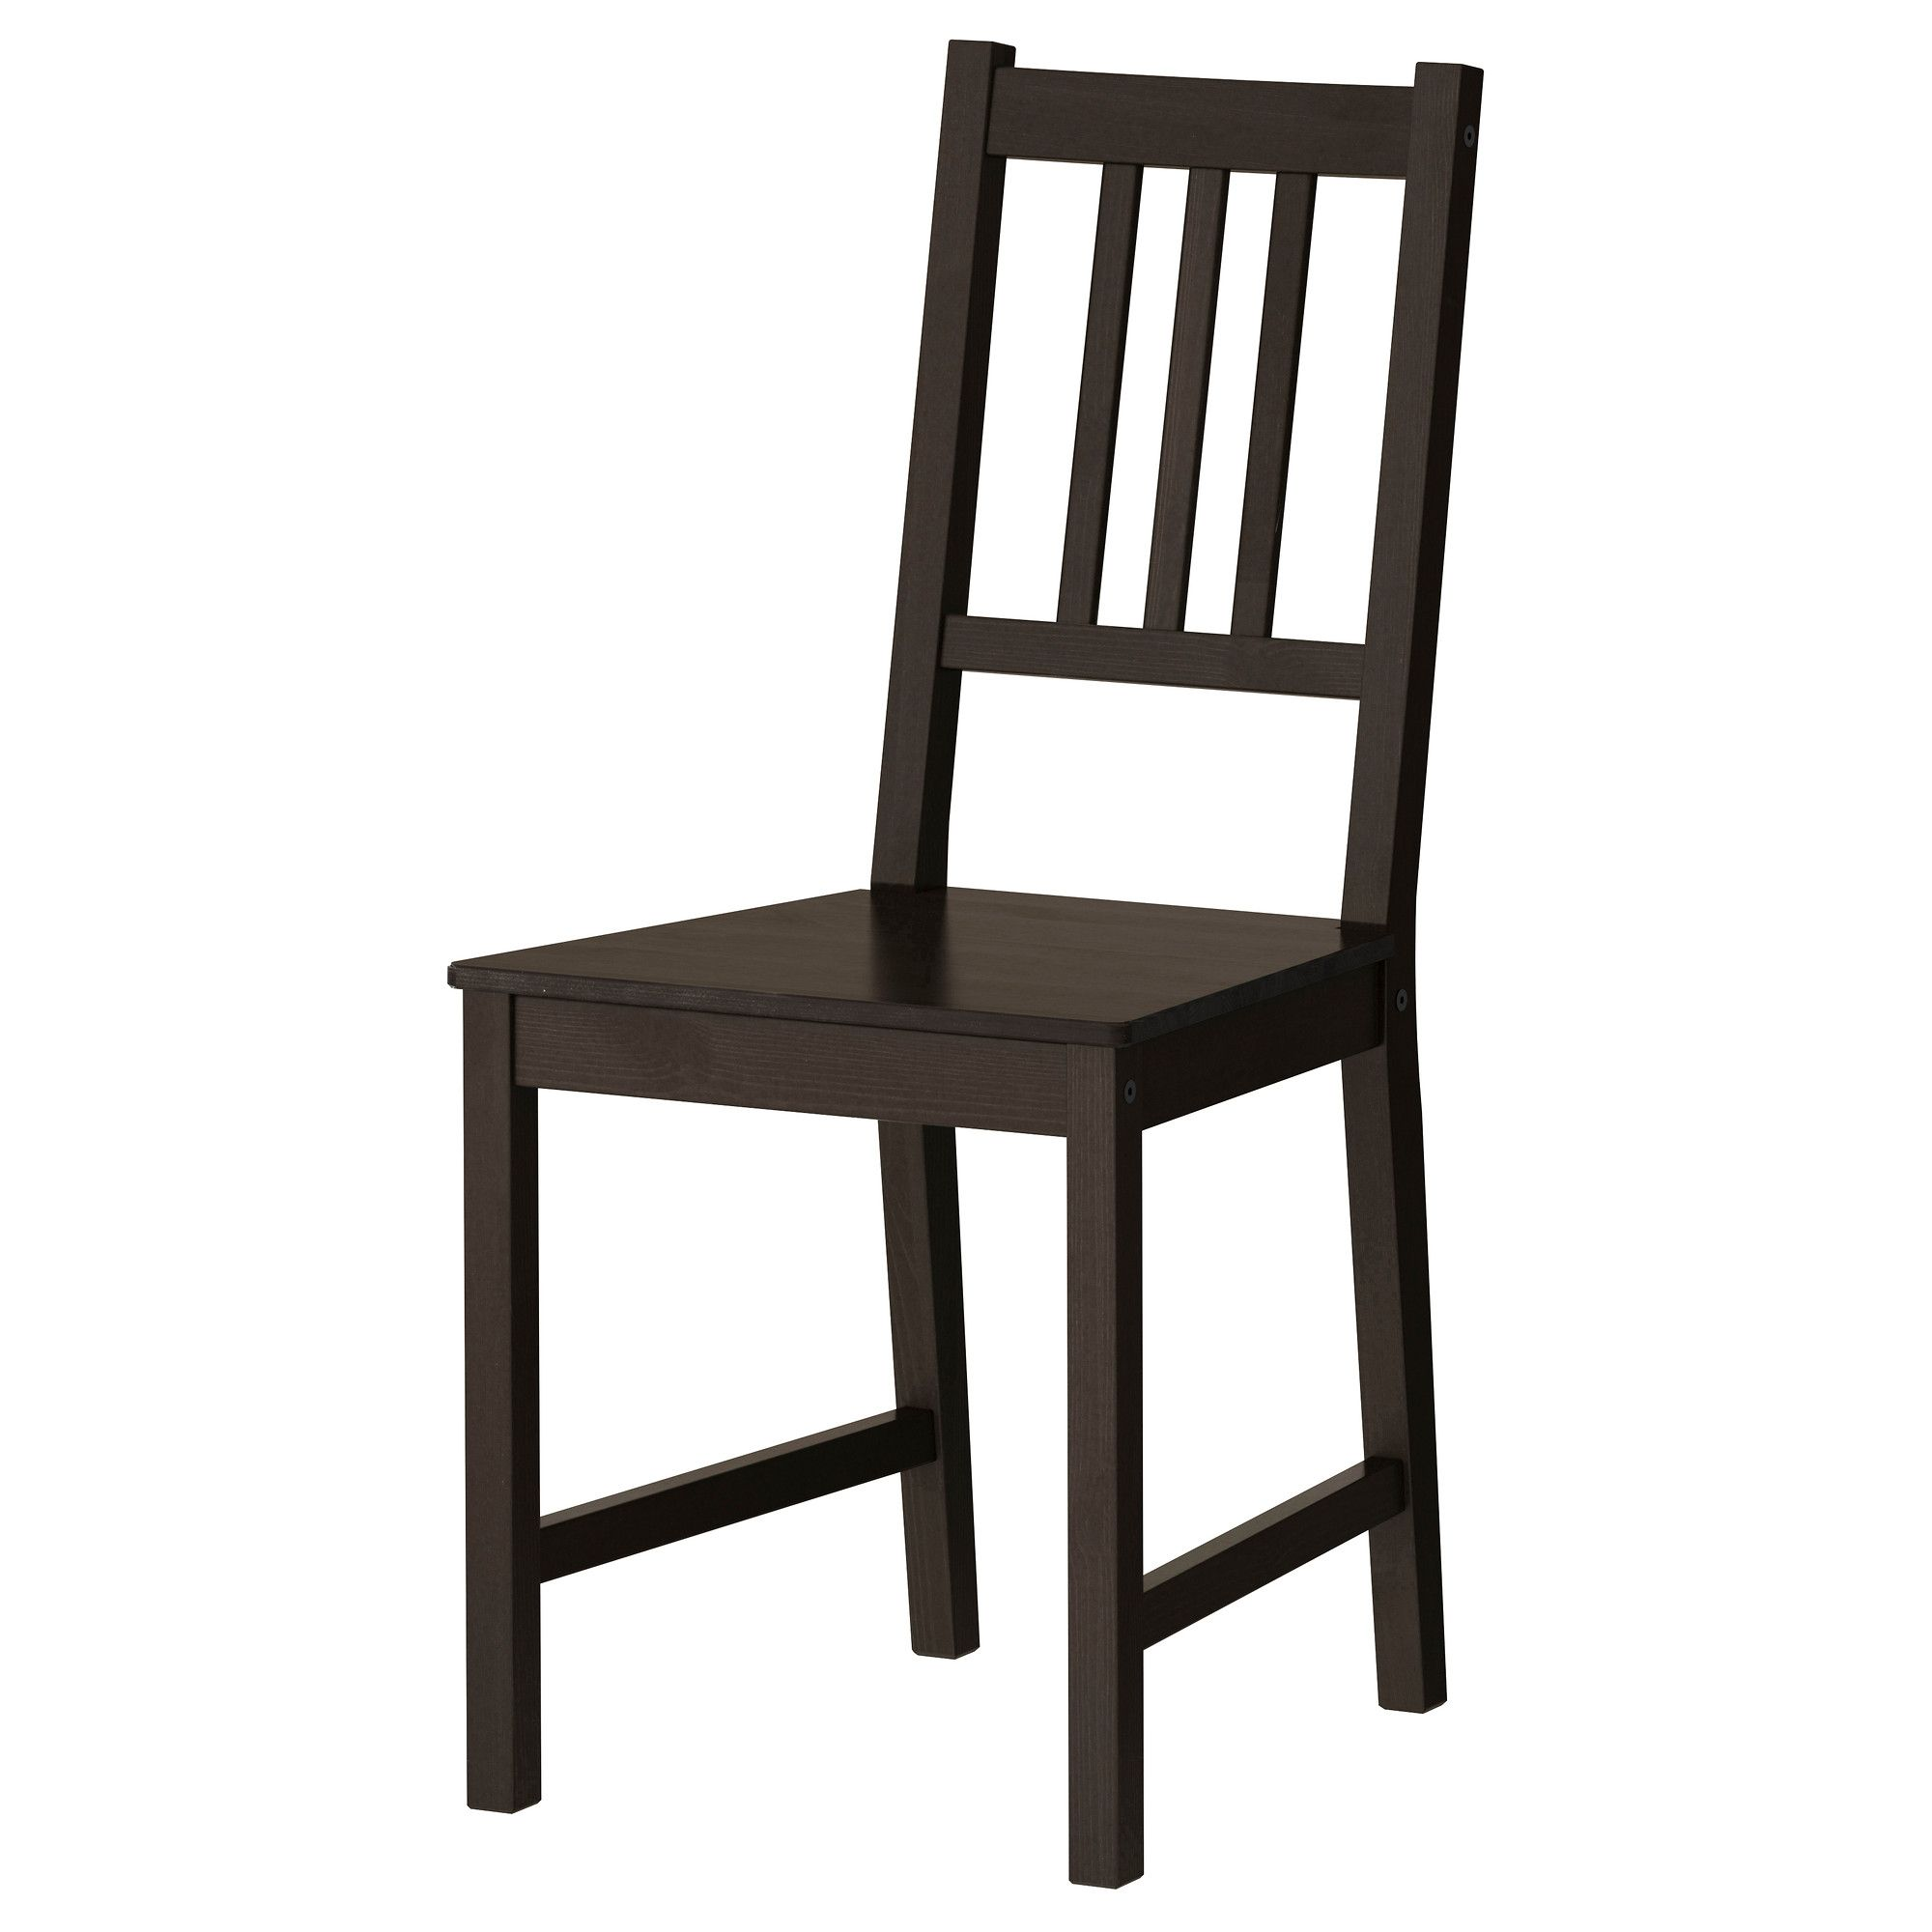 STEFAN Chair brown black